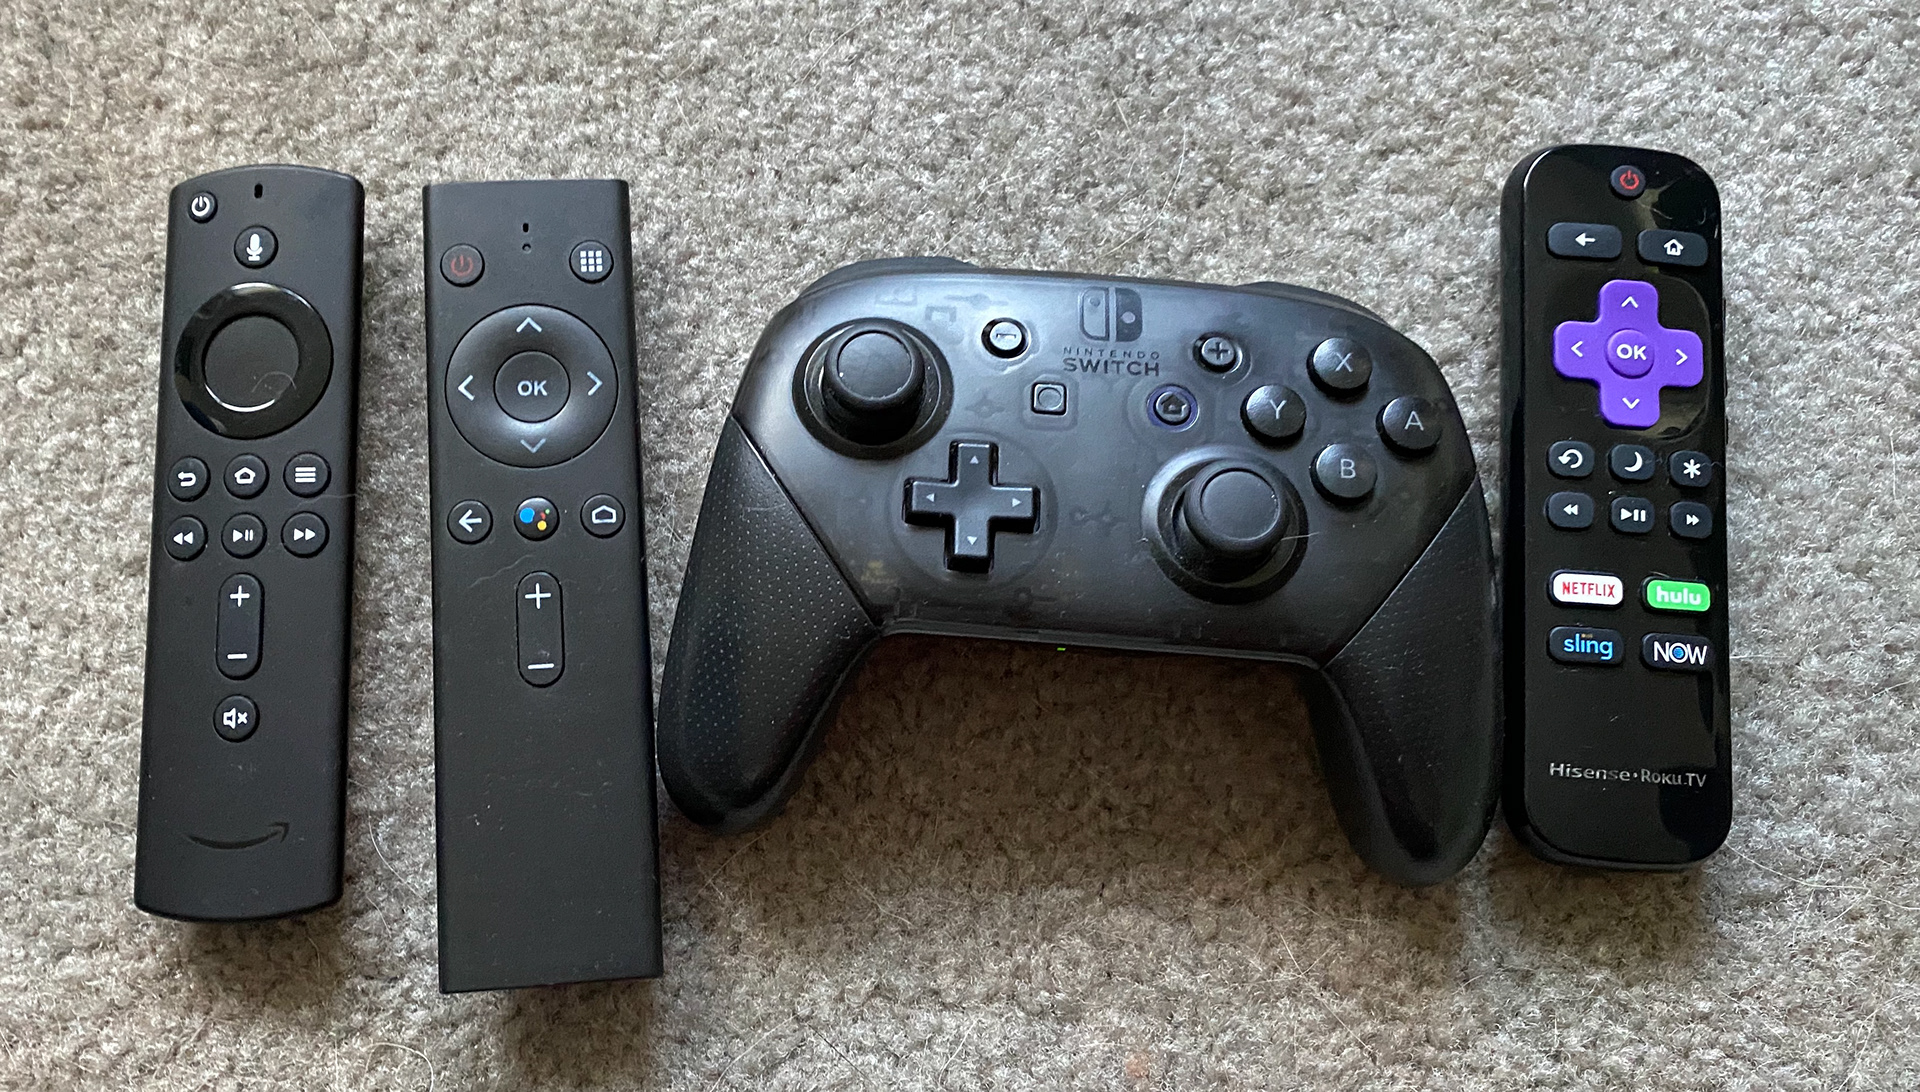 Different remotes for different consoles.